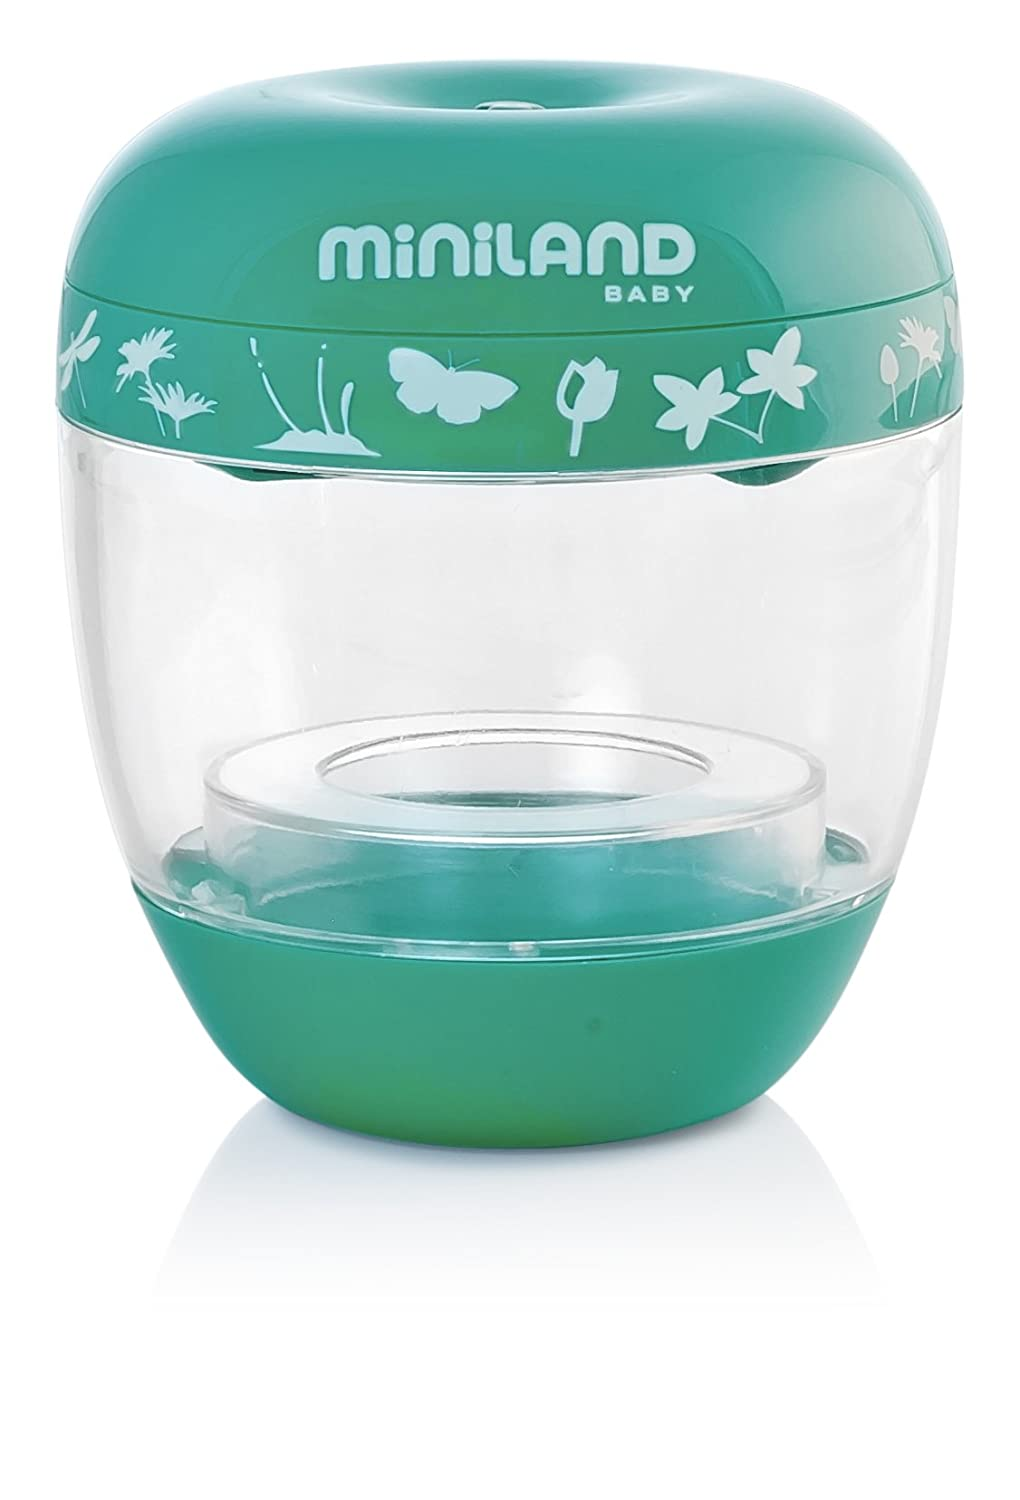 Miniland Baby 89163 on the Go Sterilizer, turquoise Miniland Deutschland